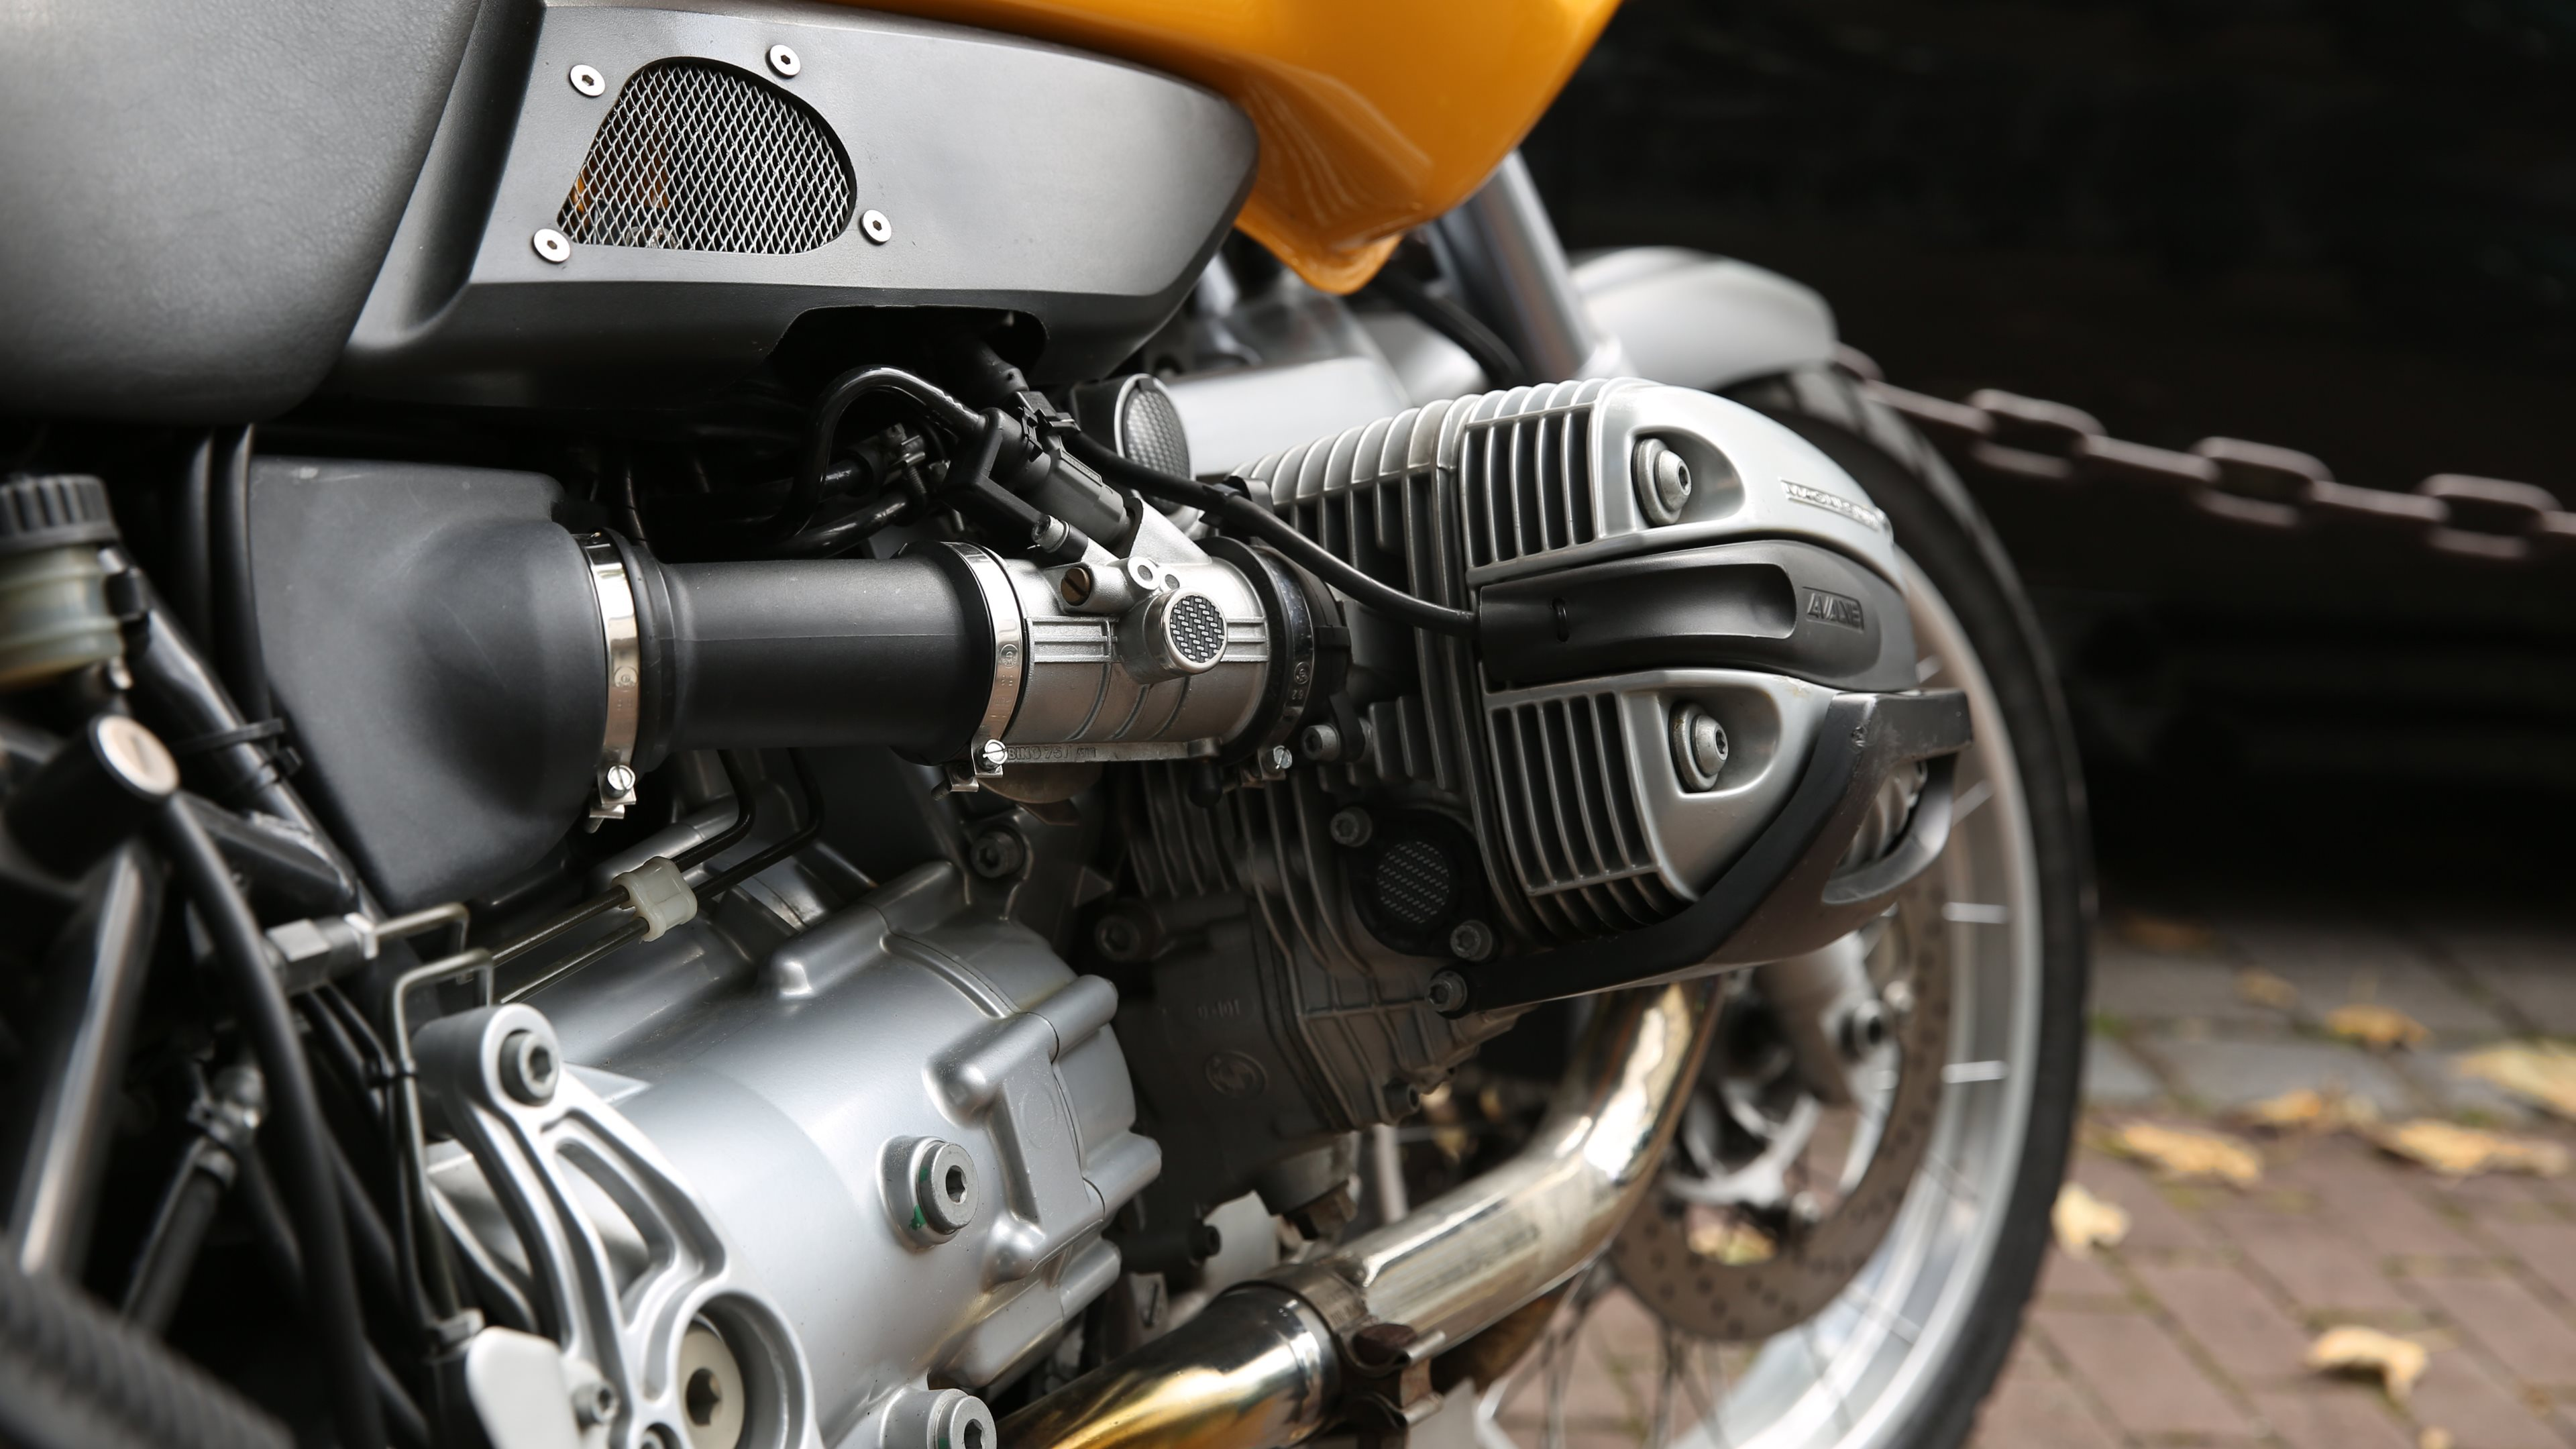 Motorcycle Engine 4k Ultra Hd Wallpaper Background Image Wallpapers Id650743